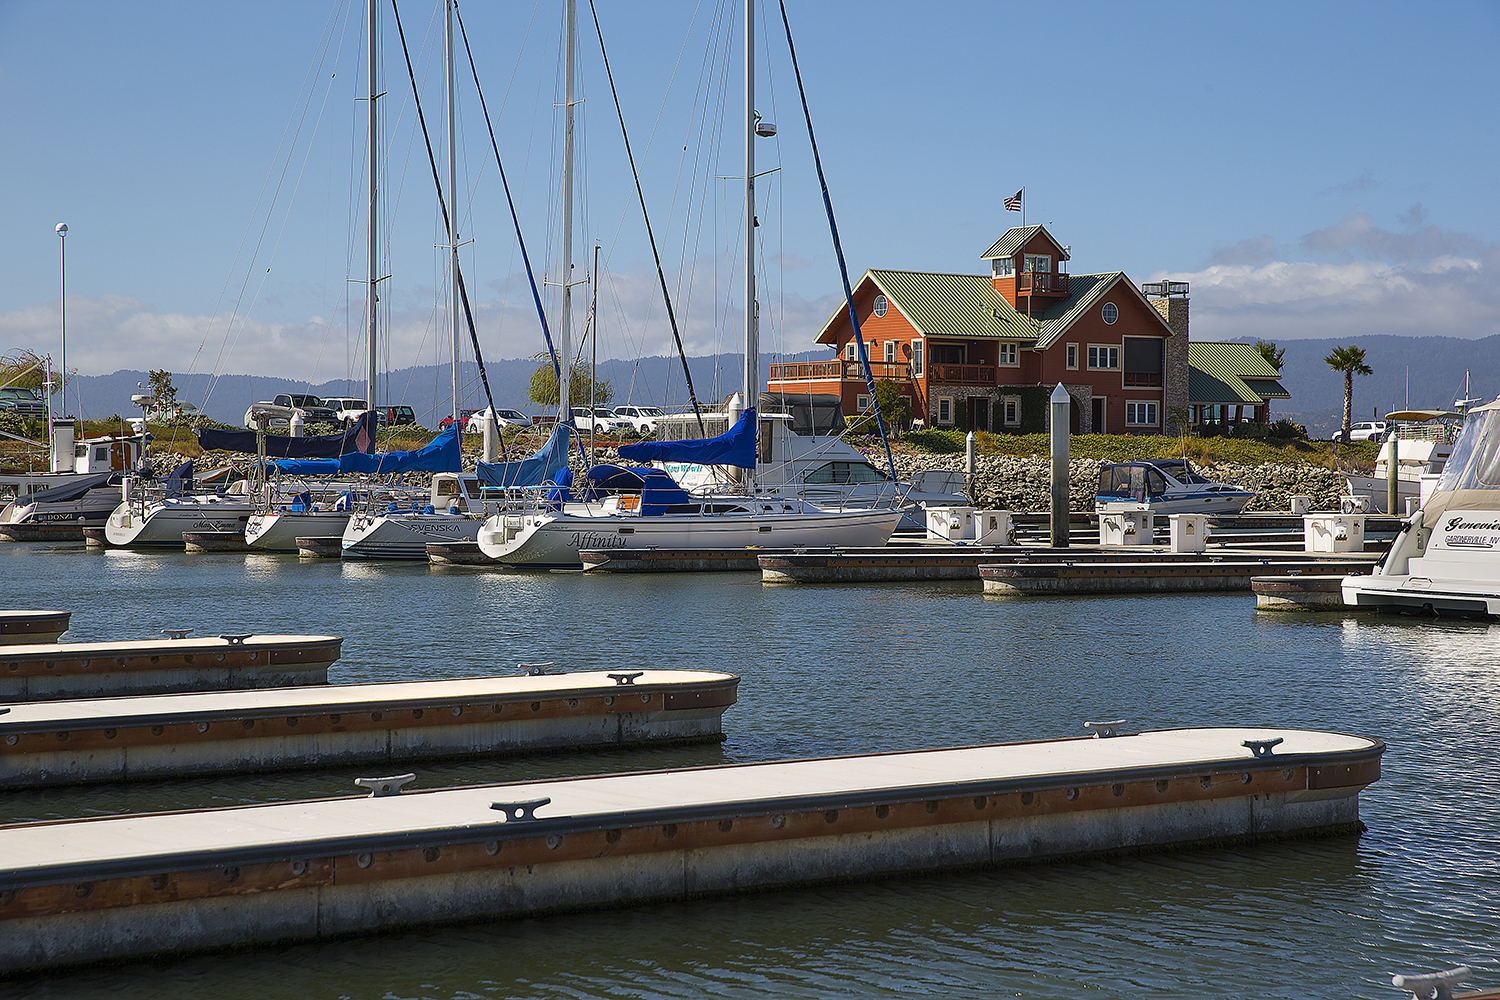 The cutting edge concrete rounded finger end pier designed by world-renowned marina builder. Bellingham Marine, has revolutionized the appearance of marinas around the world since its inception in 2007.